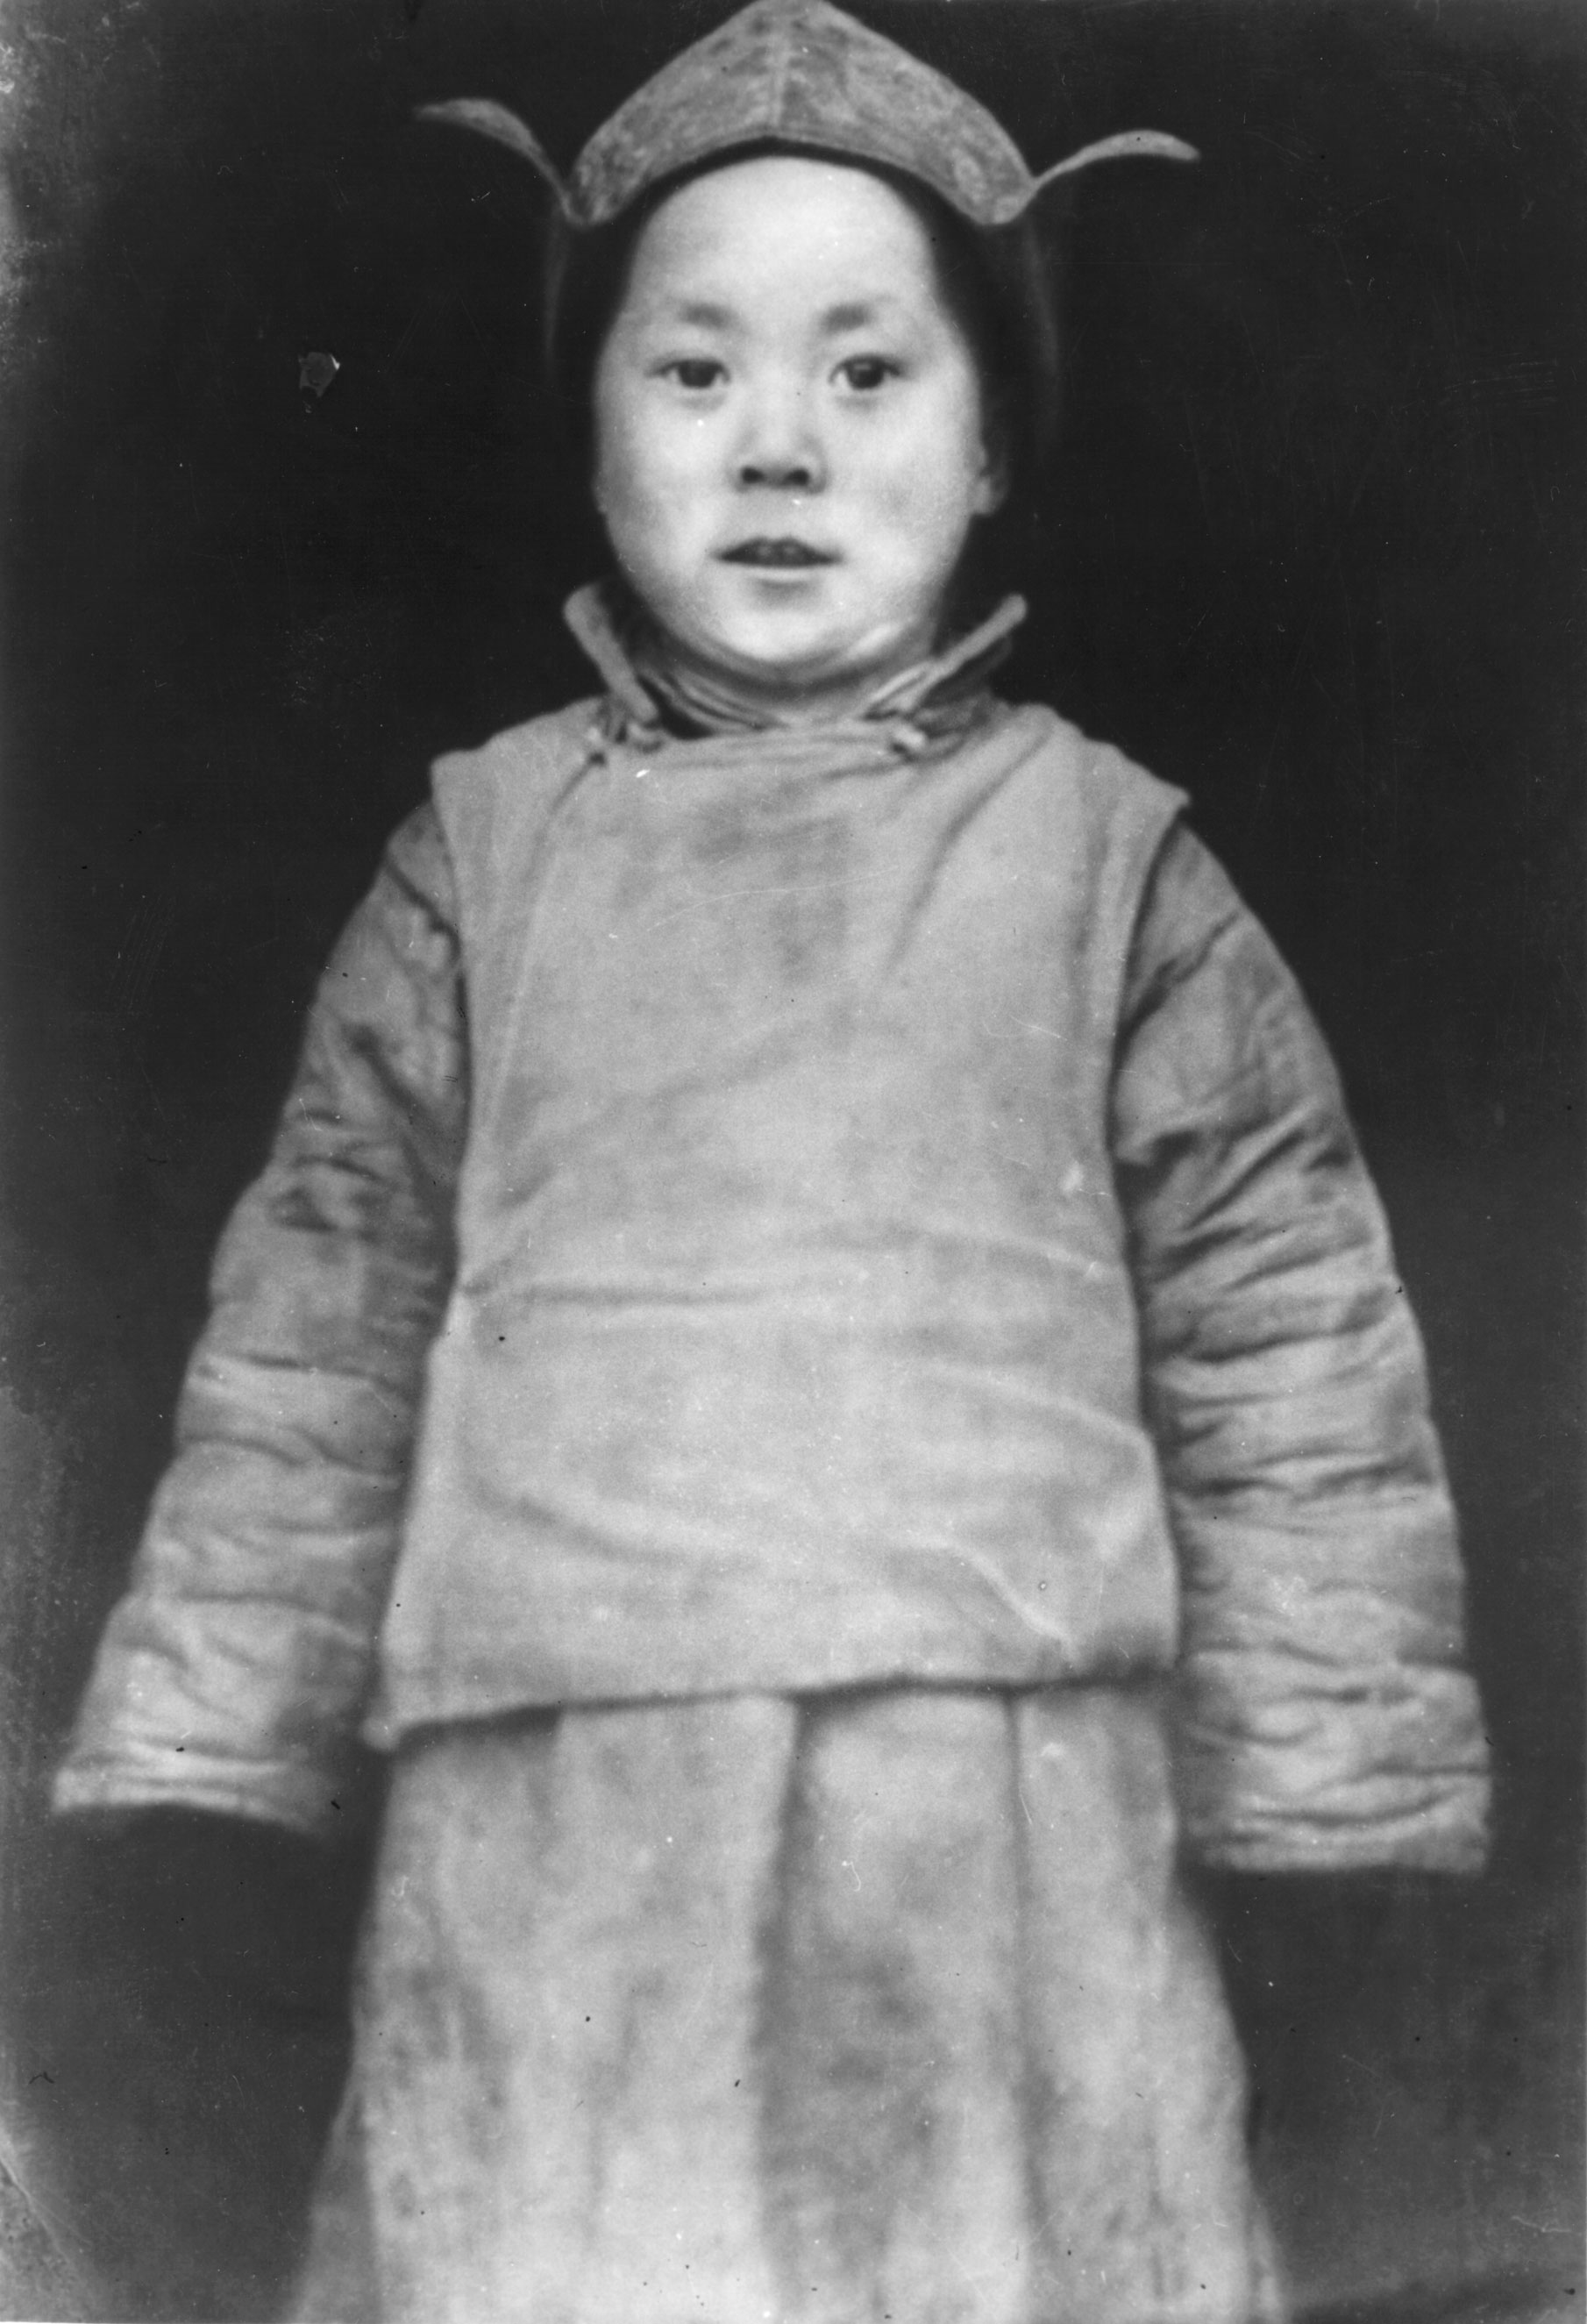 His Holiness at age 4 posing soon after the search party discovered him in 1939 in Kumbum, Amdo, Tibet.